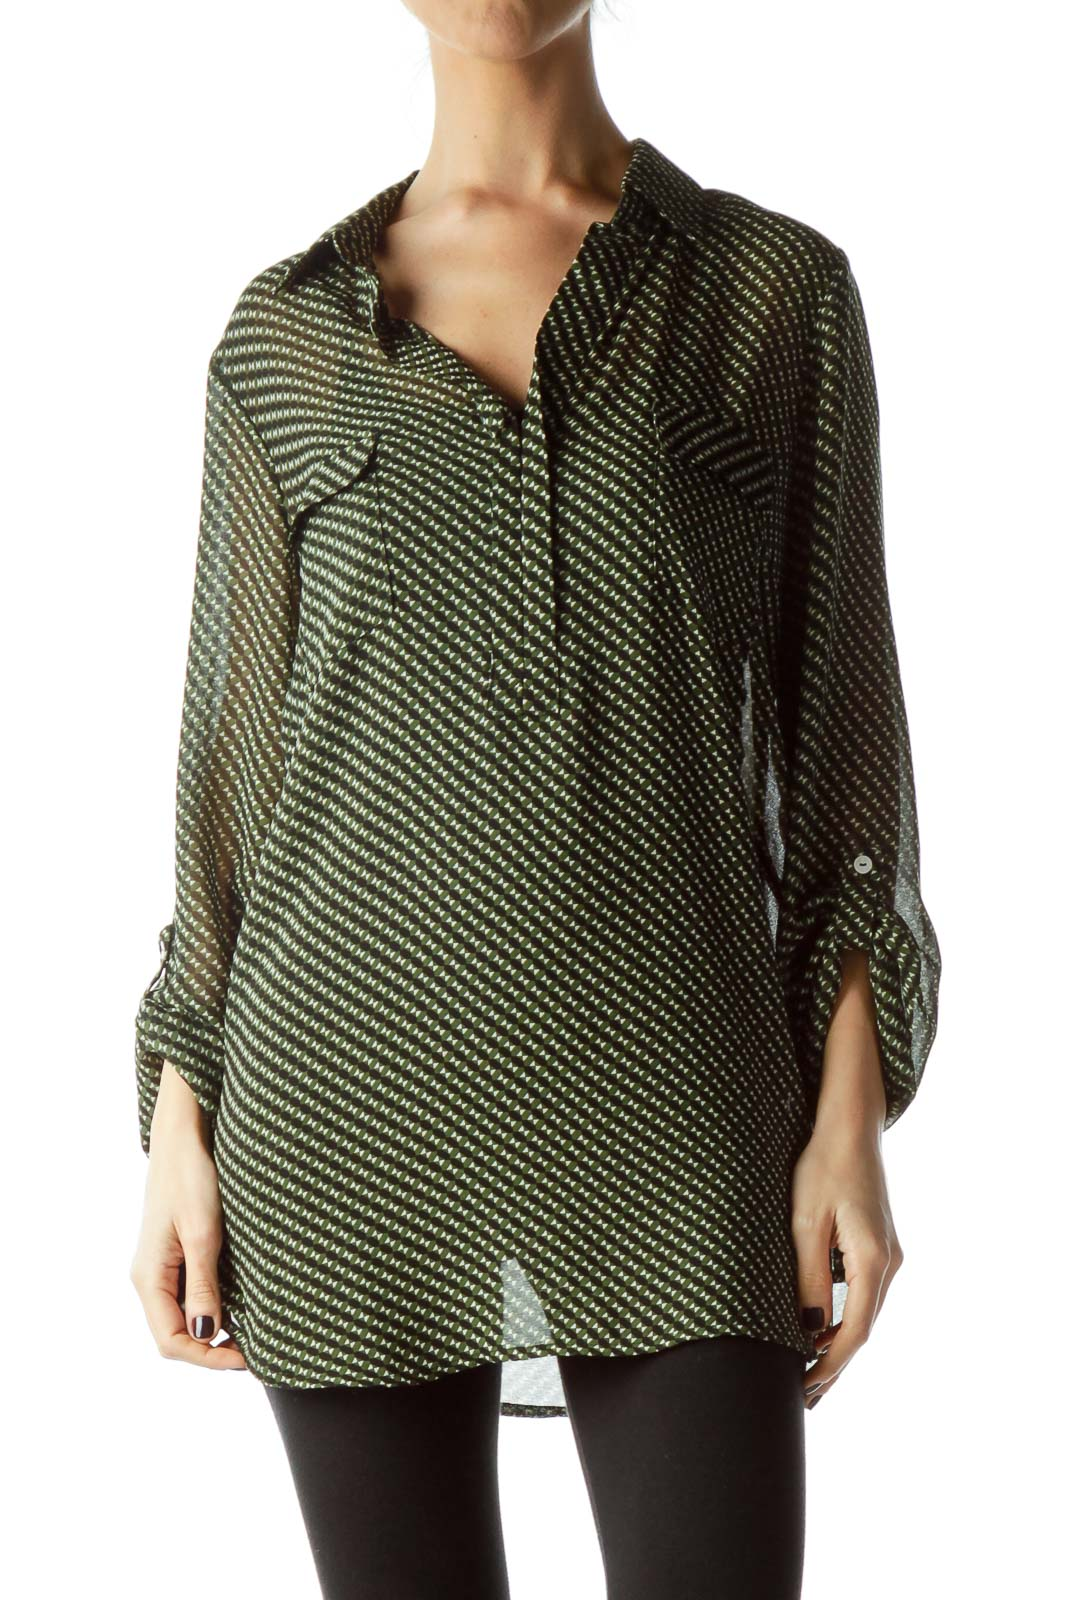 Green Black Geometric Print Long Blouse